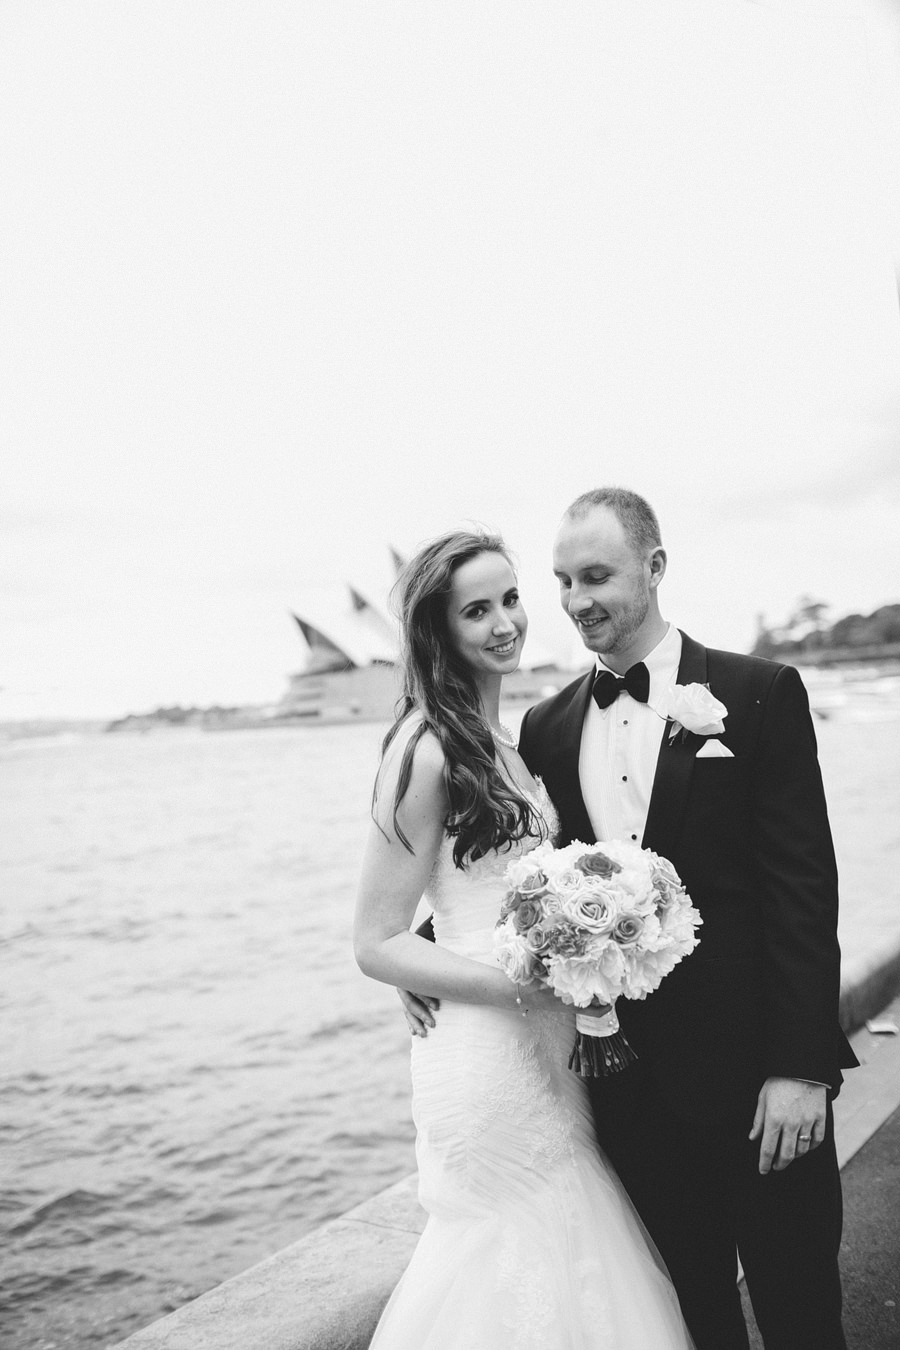 Sydney Wedding Photographers: Bridal Party Portraits